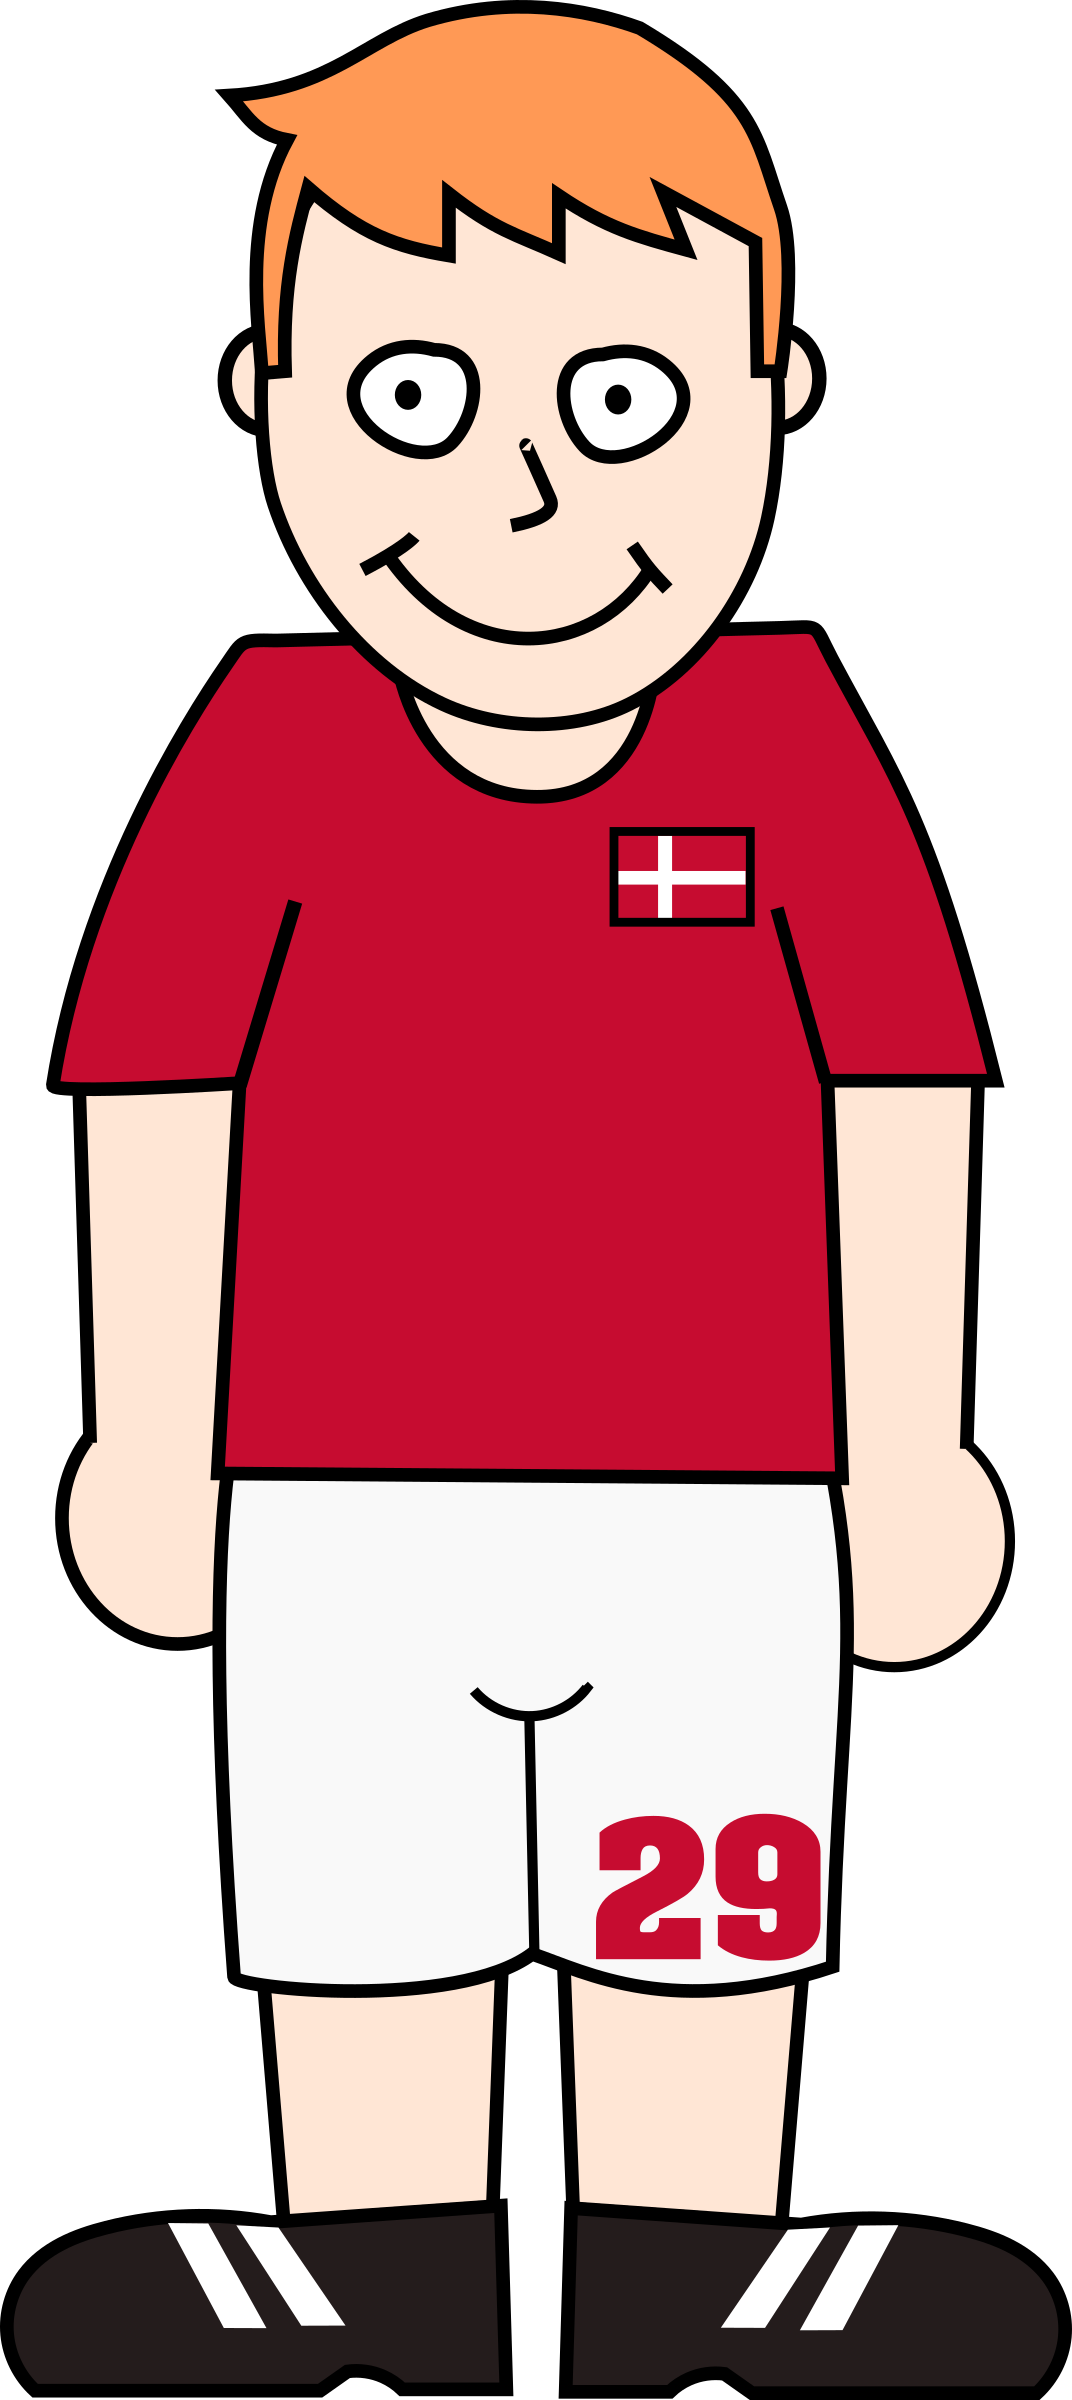 Football player denmark by Bingenberg